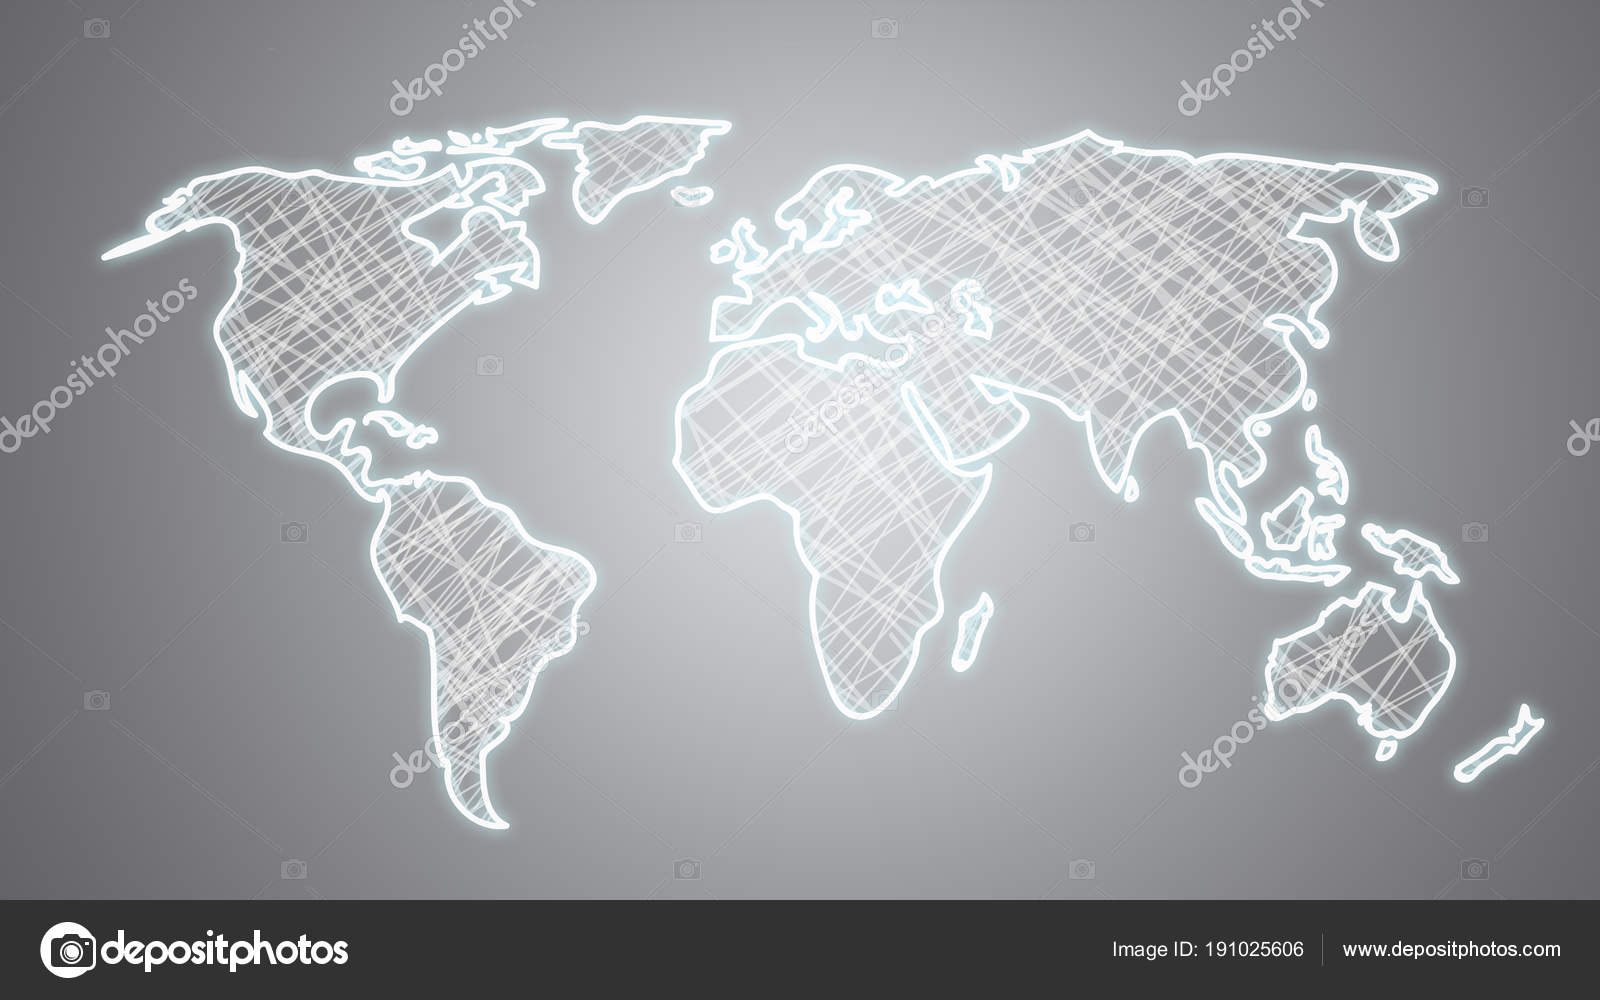 Hand drawn world map grey background stock photo perig76 191025606 hand drawn world map grey background stock photo gumiabroncs Image collections